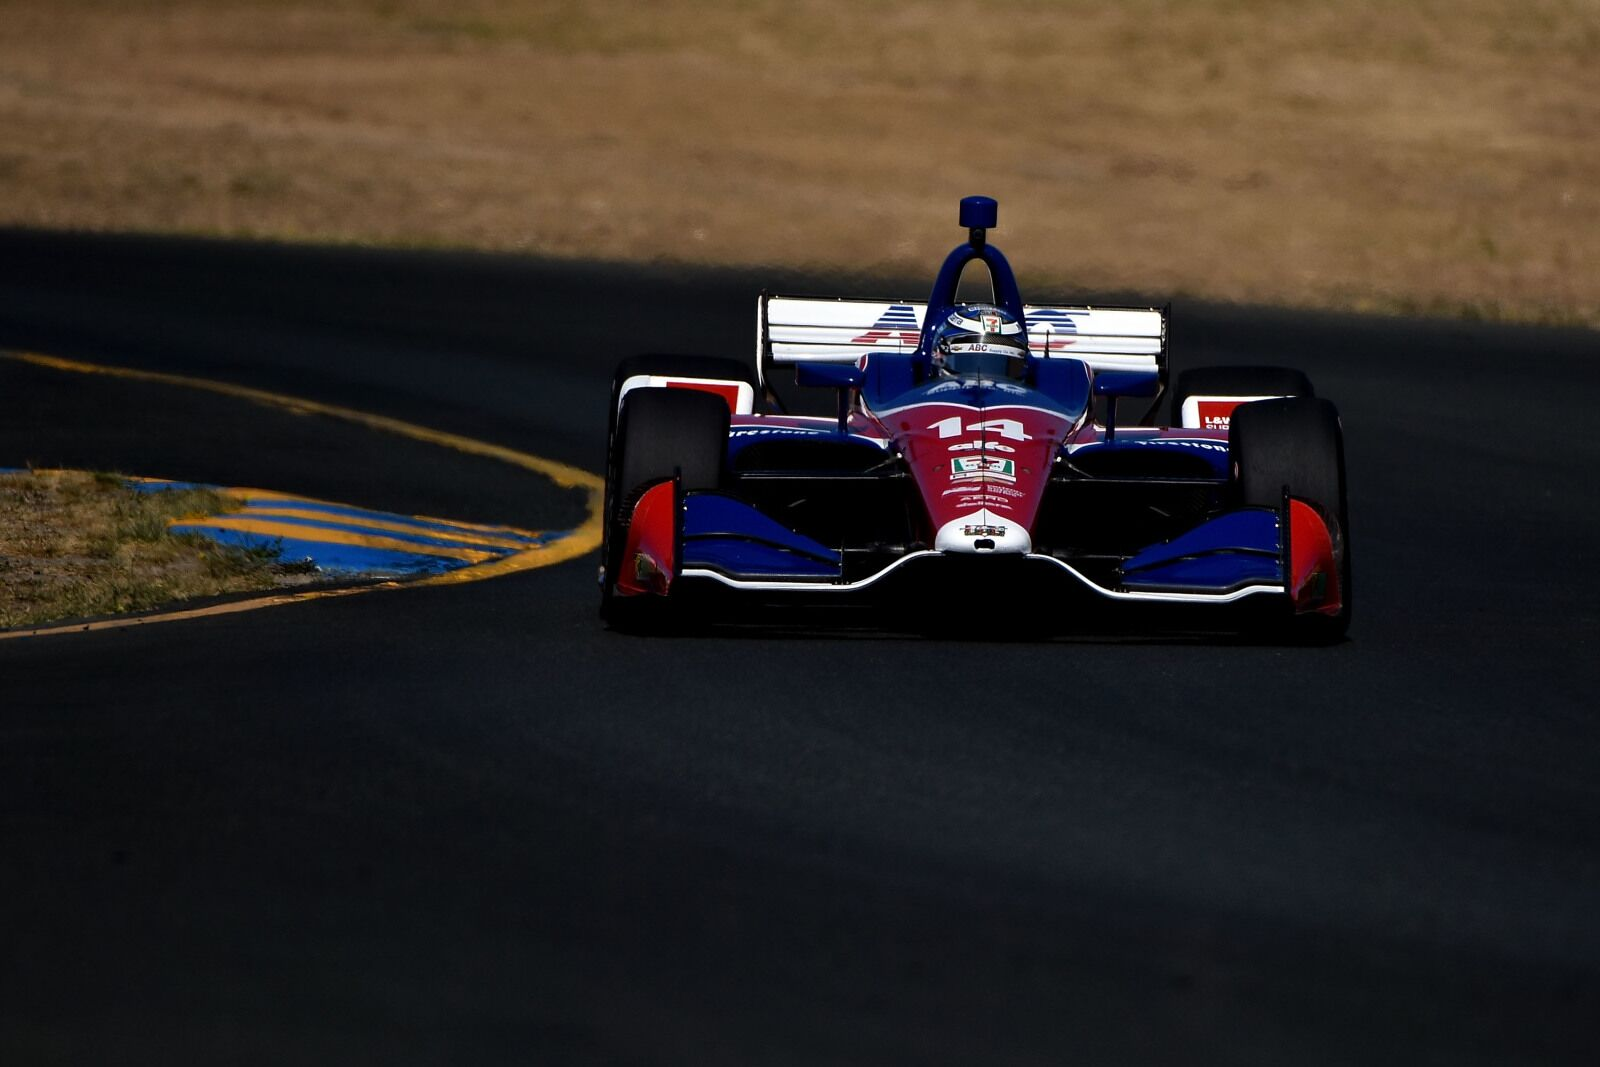 Indycar What We Know About The 2019 Driver Lineup